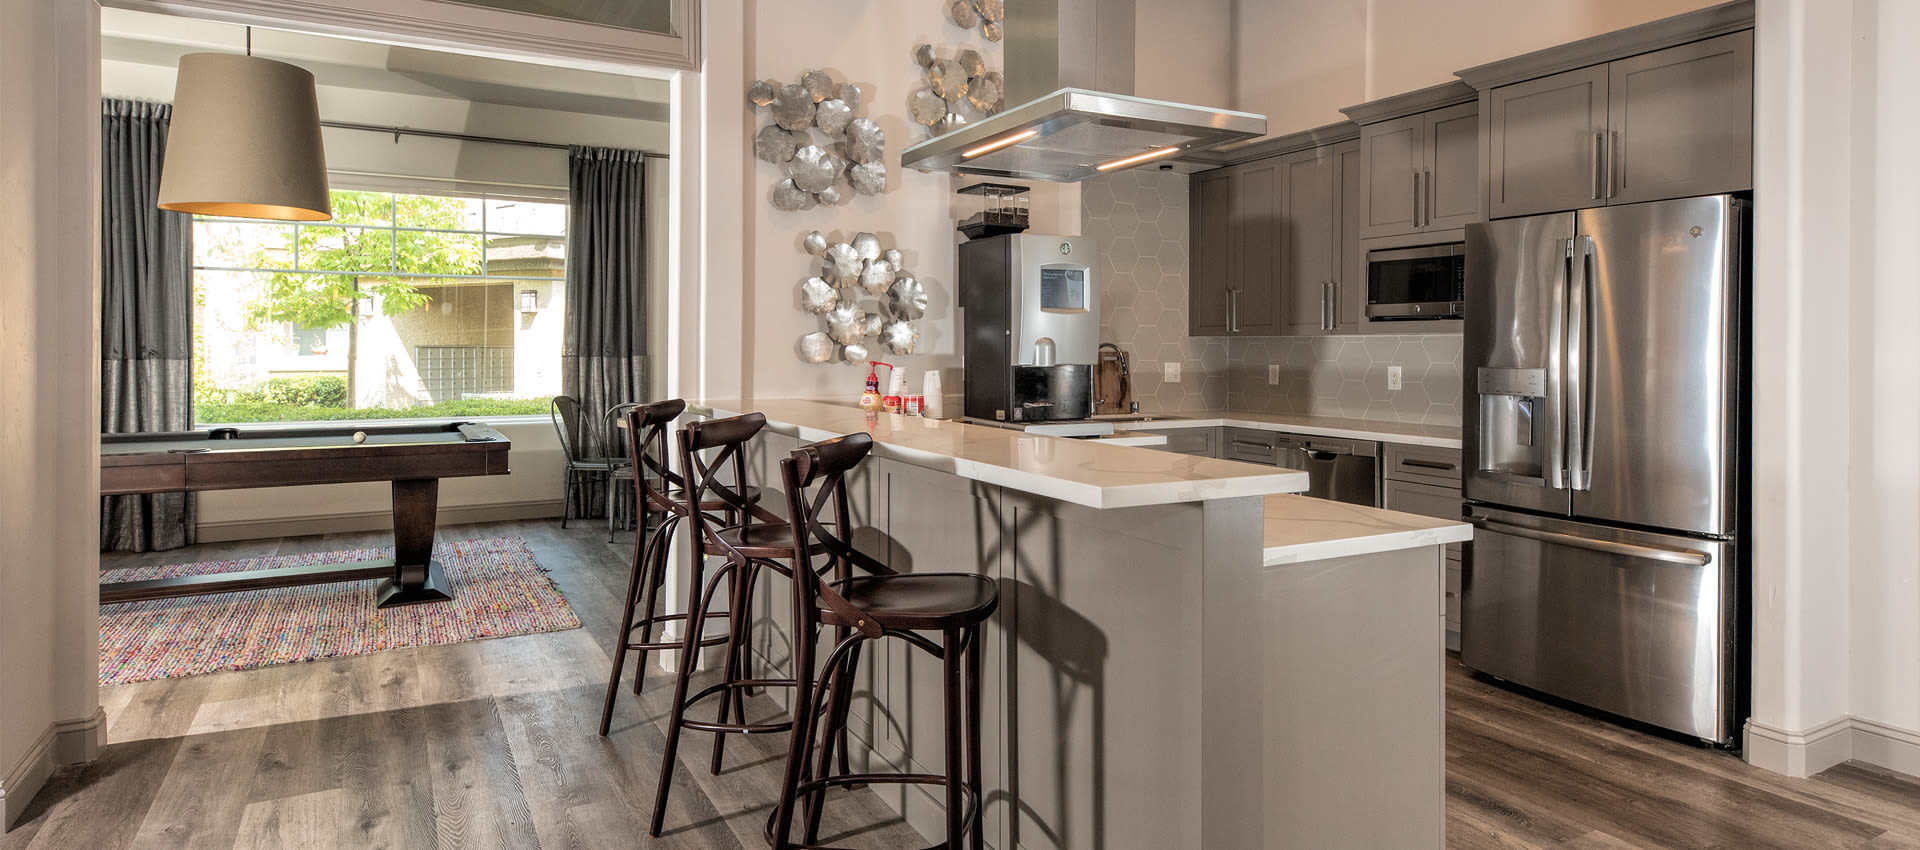 Resident Kitchen with Complimentary Coffee at The Artisan Apartment Homes in Sacramento, California